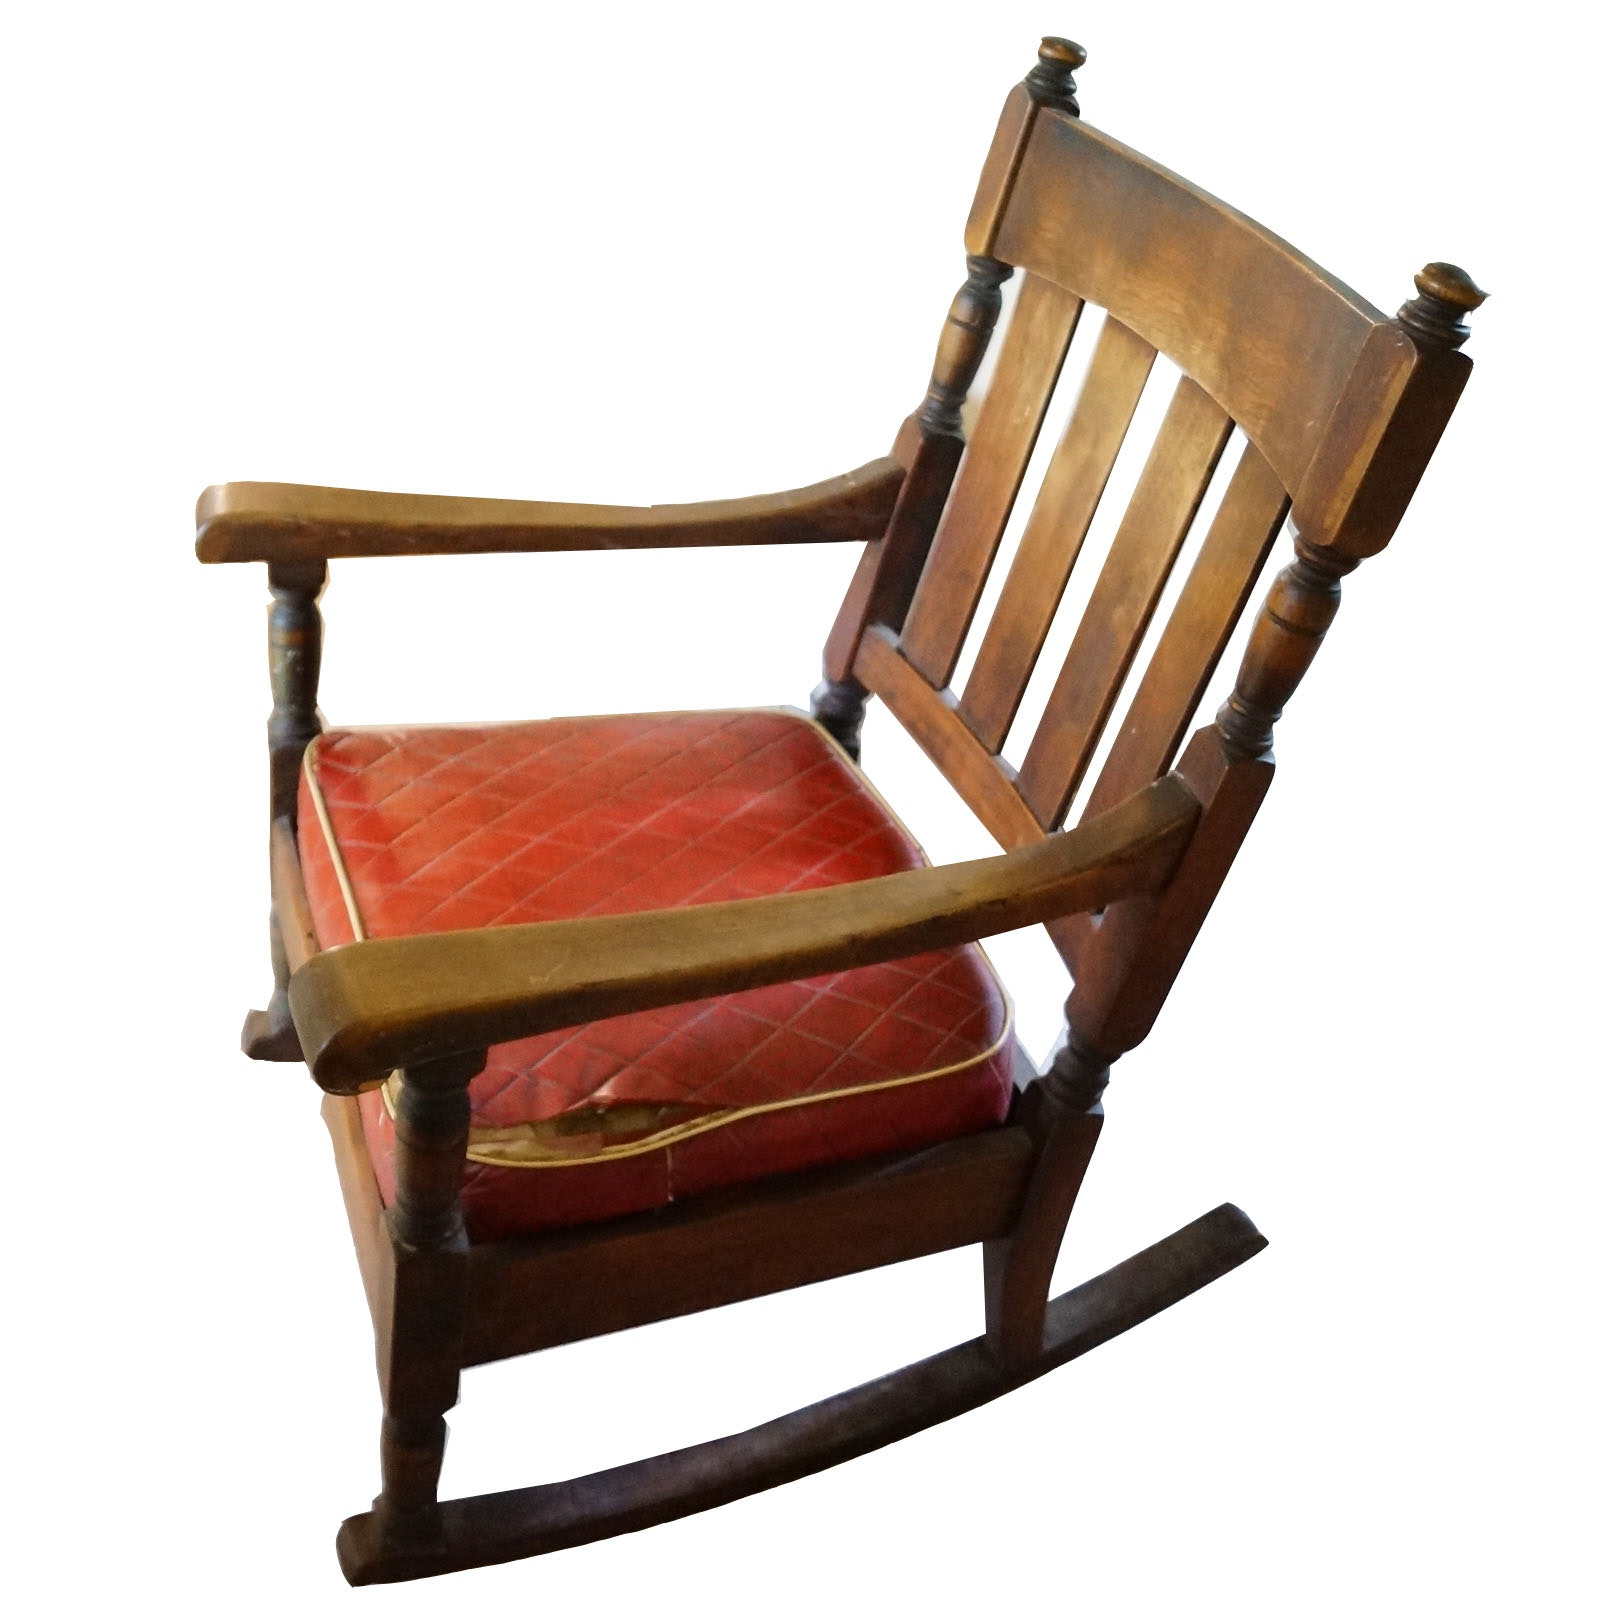 Antique Wood Rocking Chair With Red Cushion ...